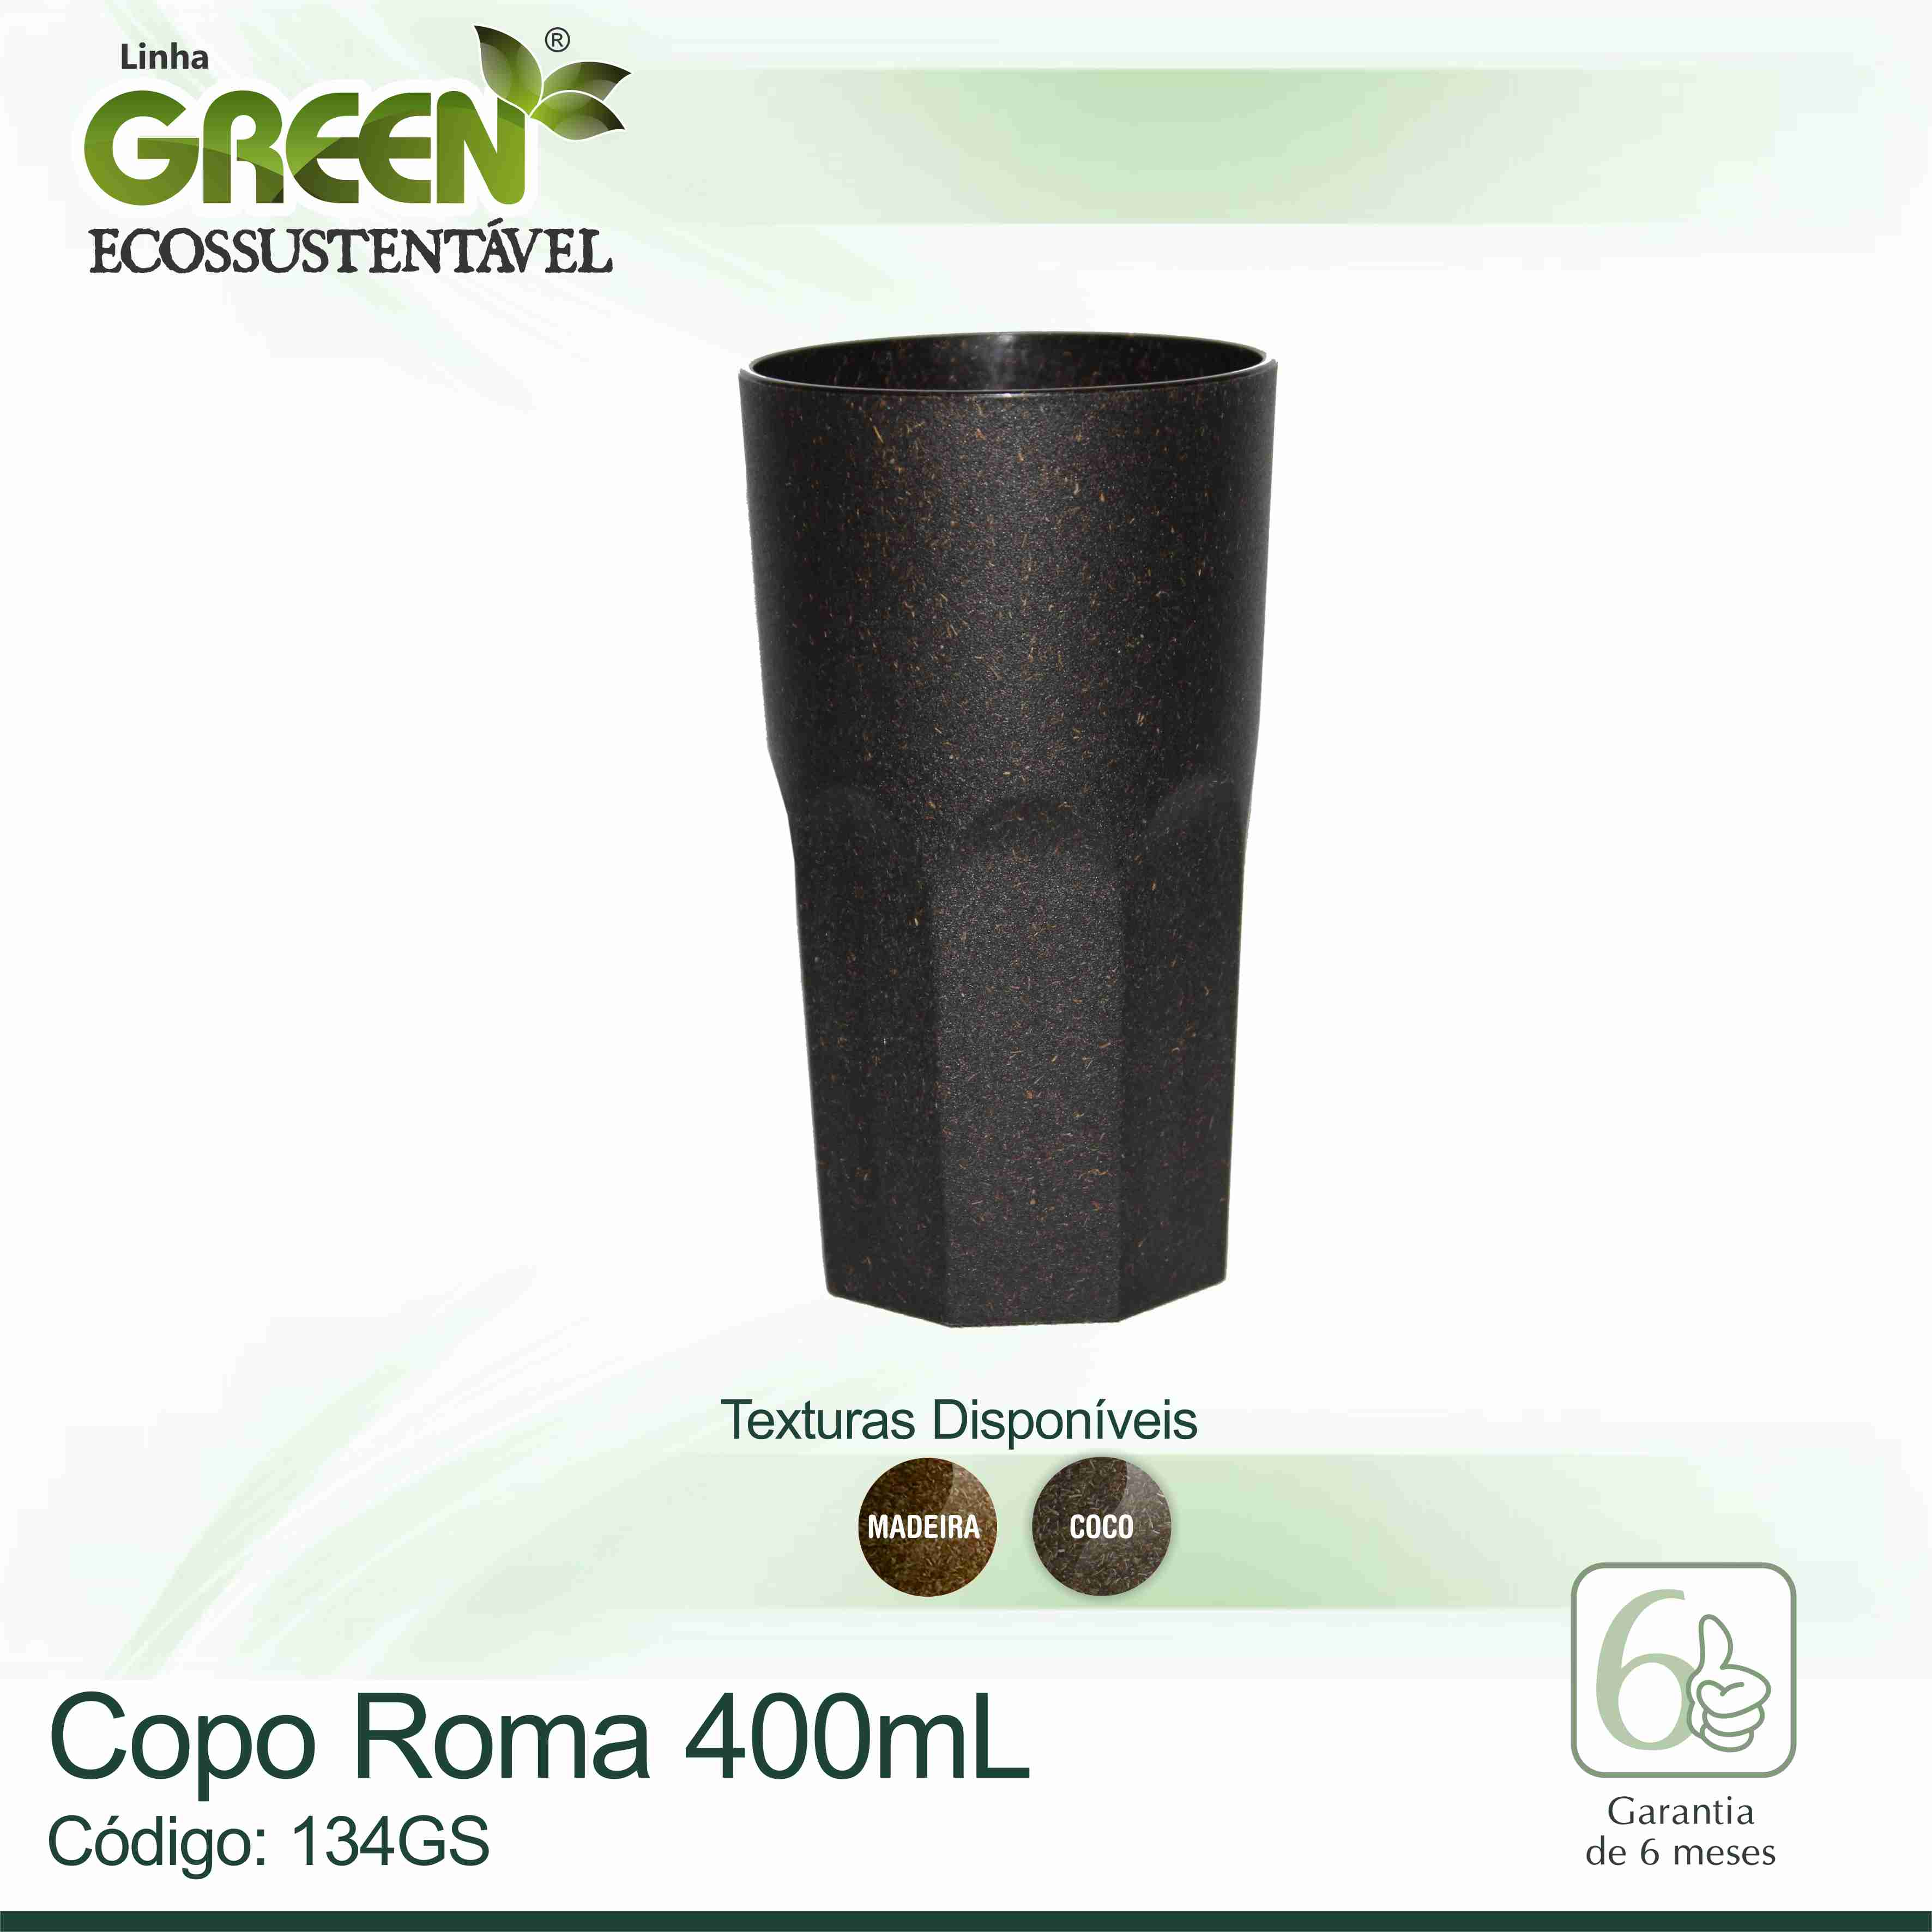 Copo Roma GREEN - 400ml